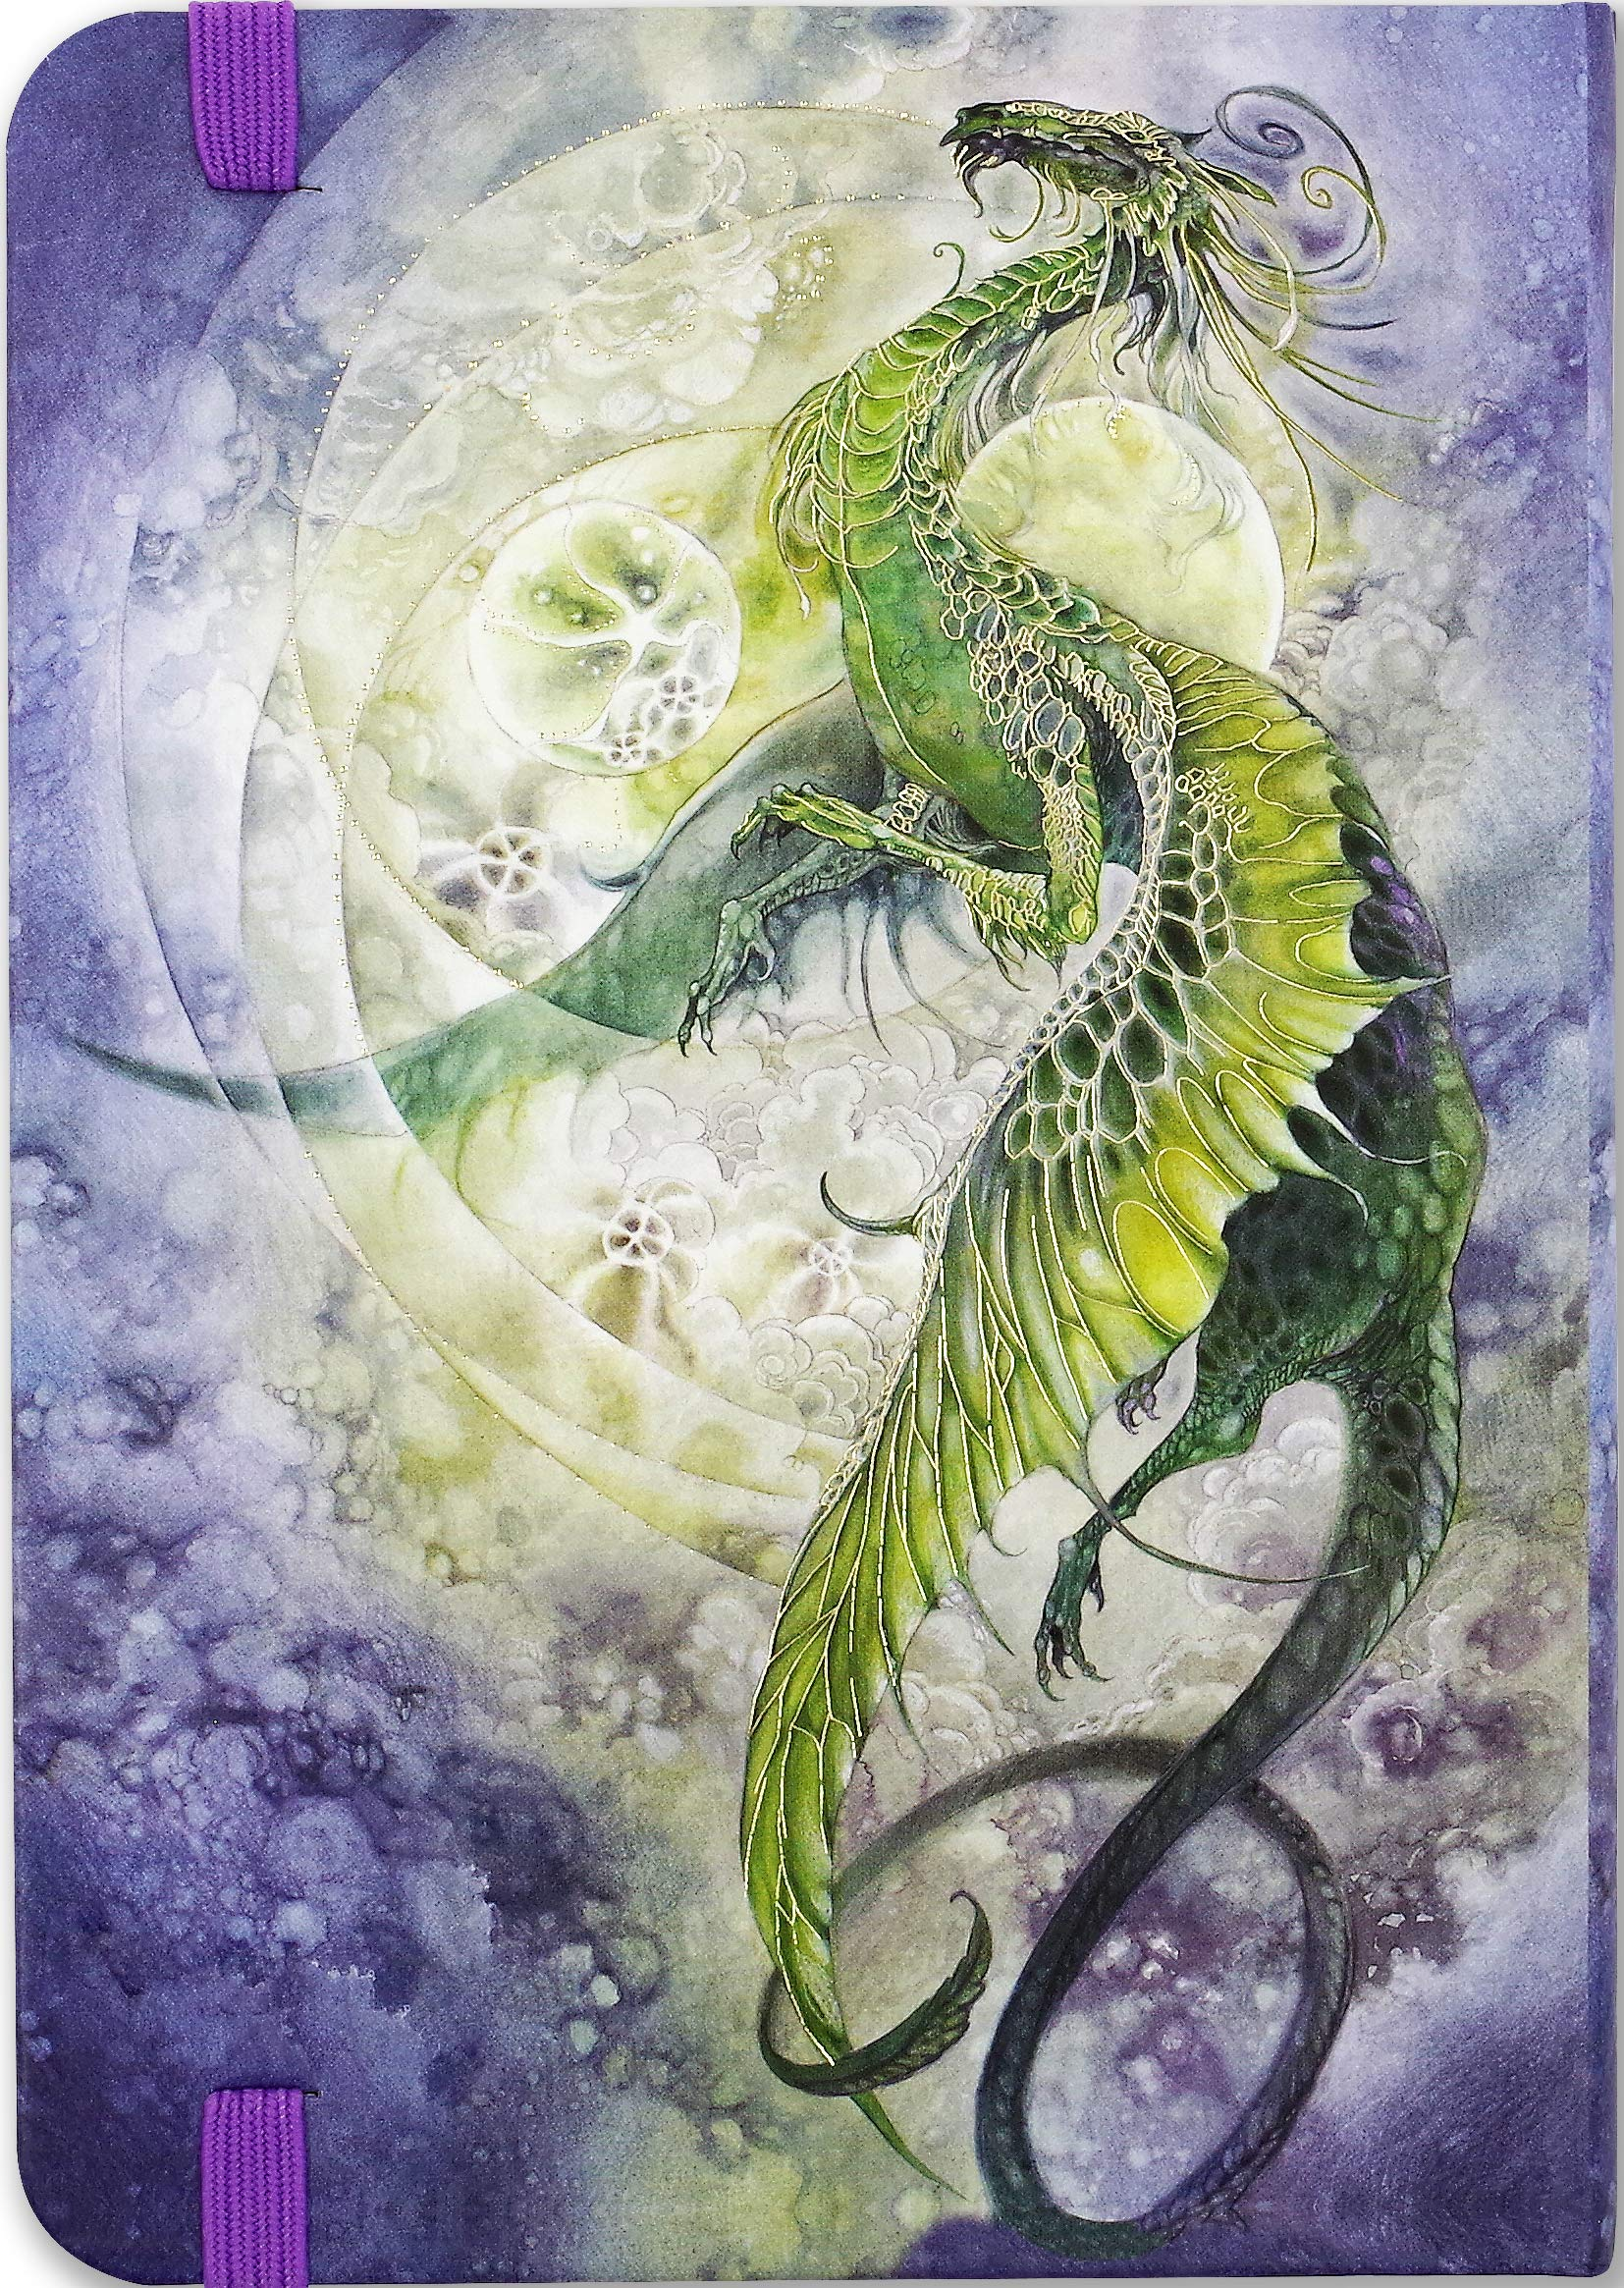 Ssi 2020 Calendar Amazon.com: 2020 Dragon Weekly Planner (16 Month Engagement